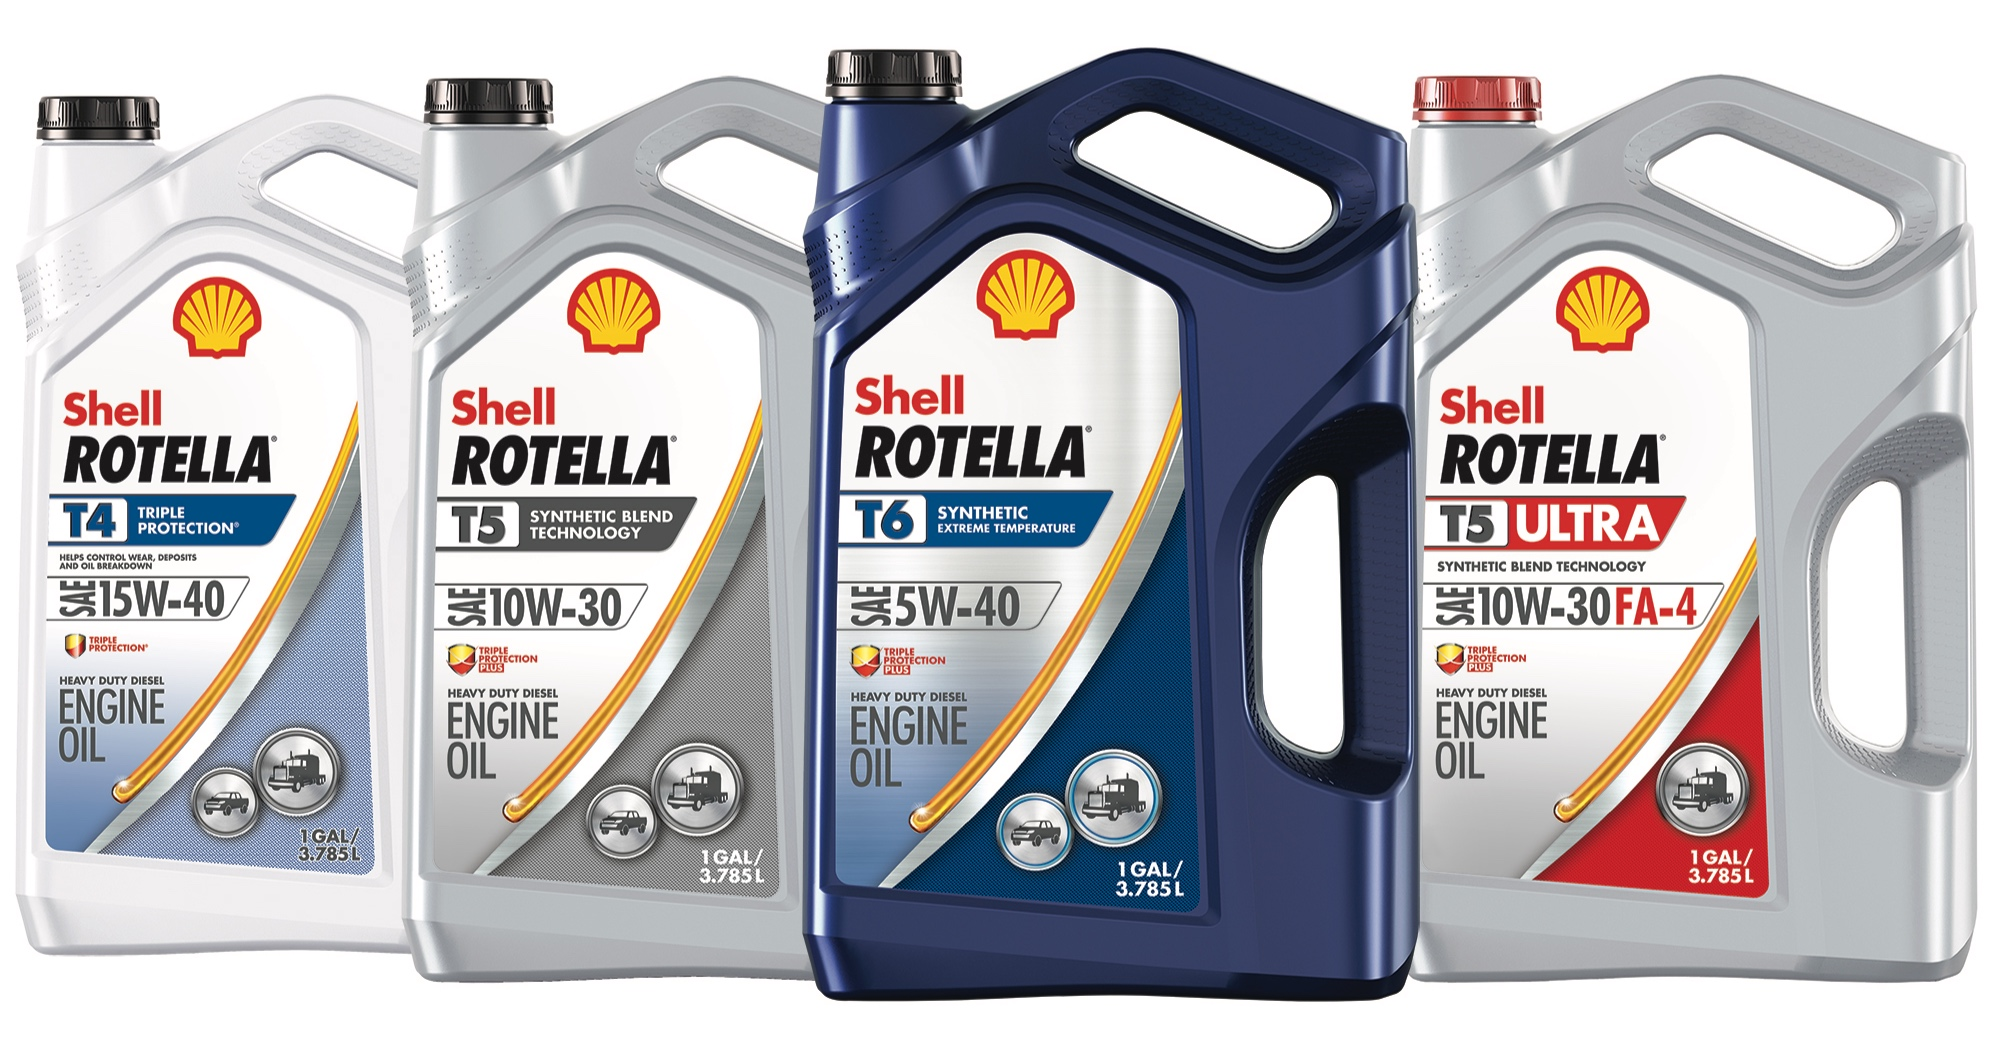 products_shell_rotella.jpg